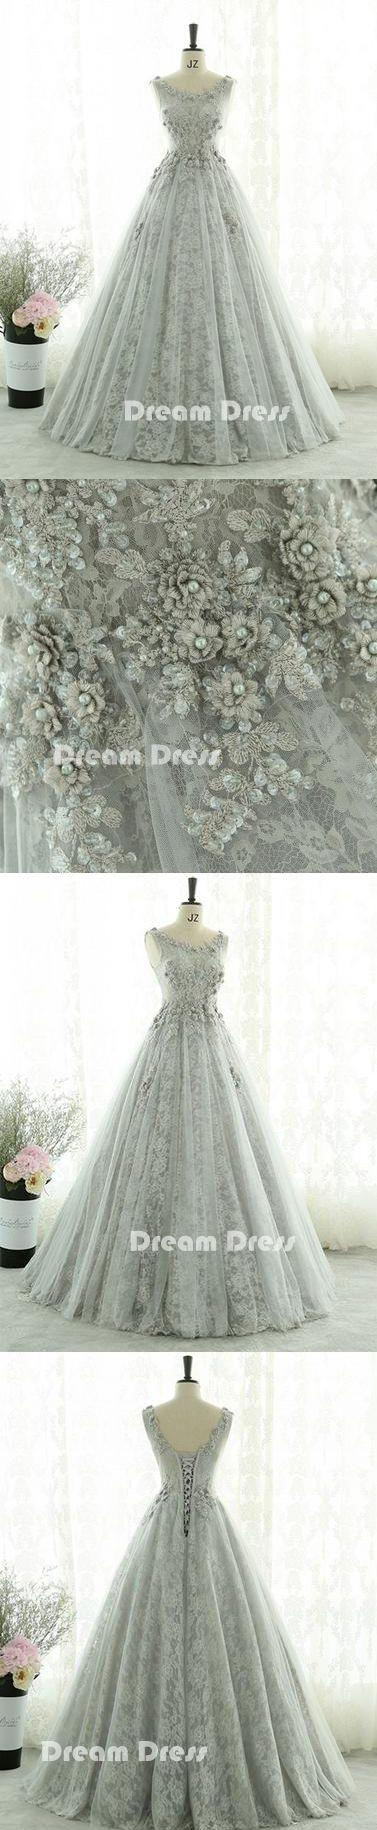 زفاف - Gray Lace Tulle Long Prom Dresses, Gray Evening Dresses,PD1802010